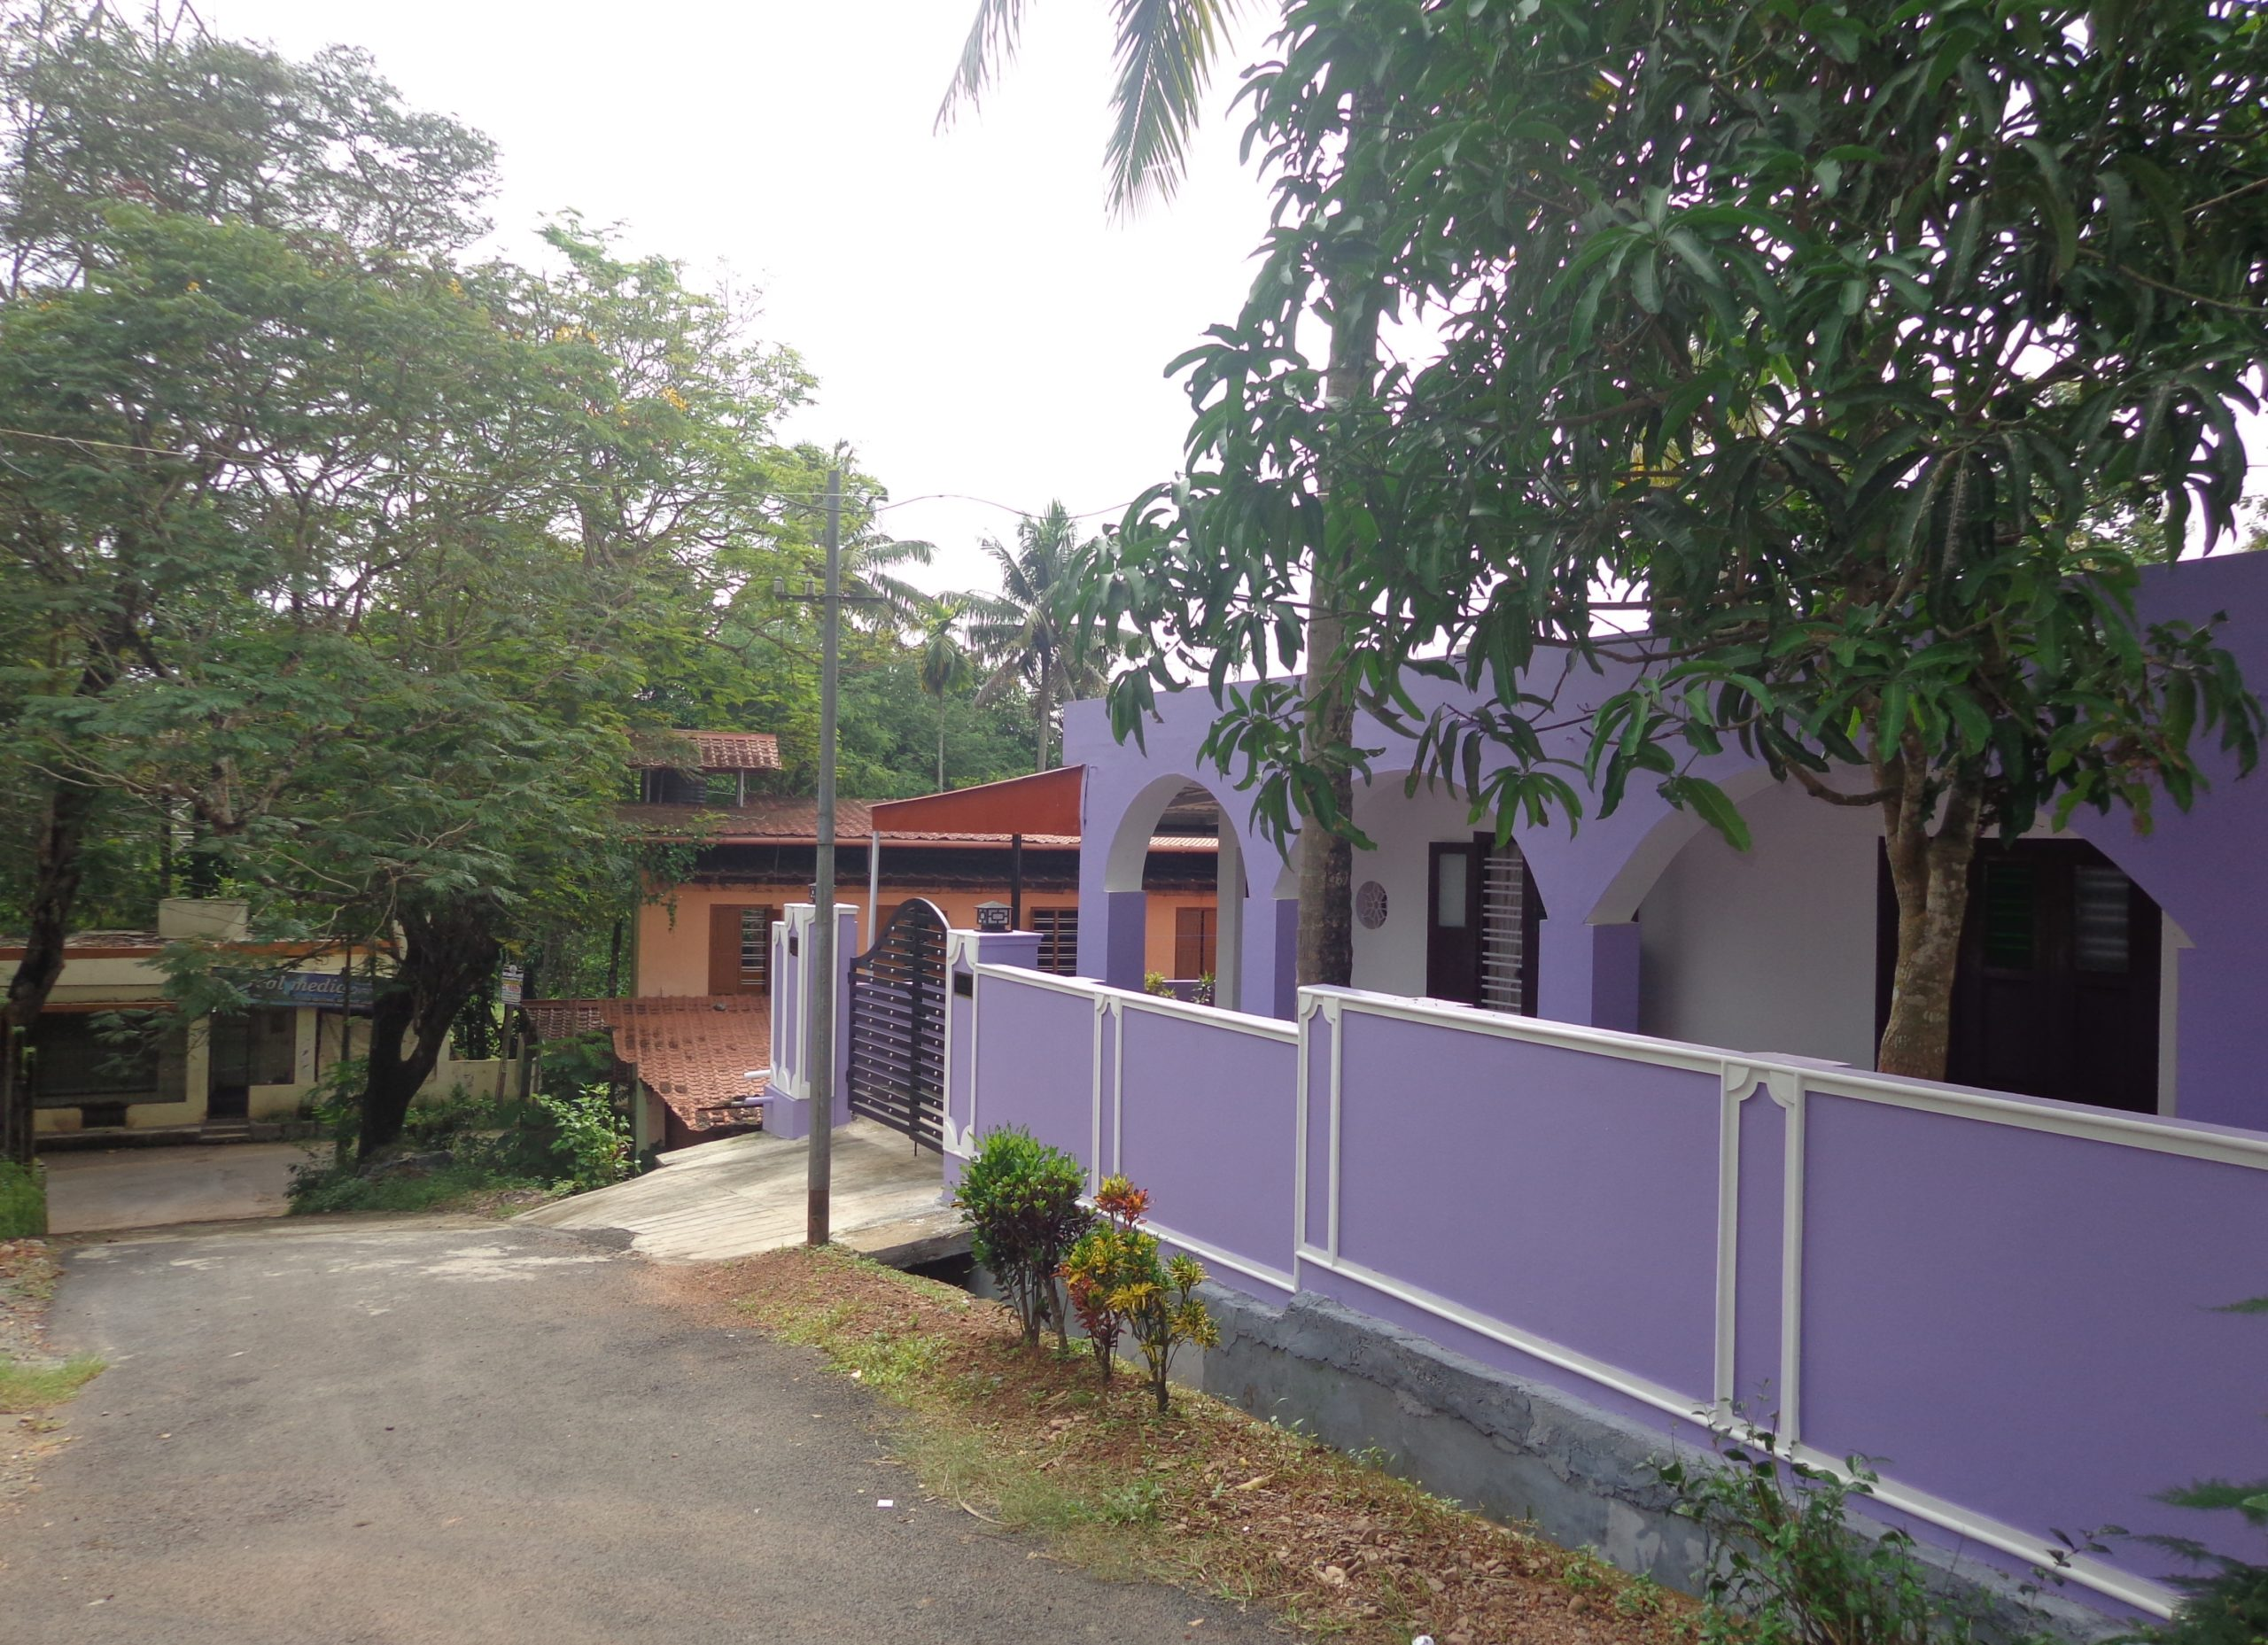 Fully Furnished 3BHK House For Urgent Sale  In Puthencruz Town, Ernakulam